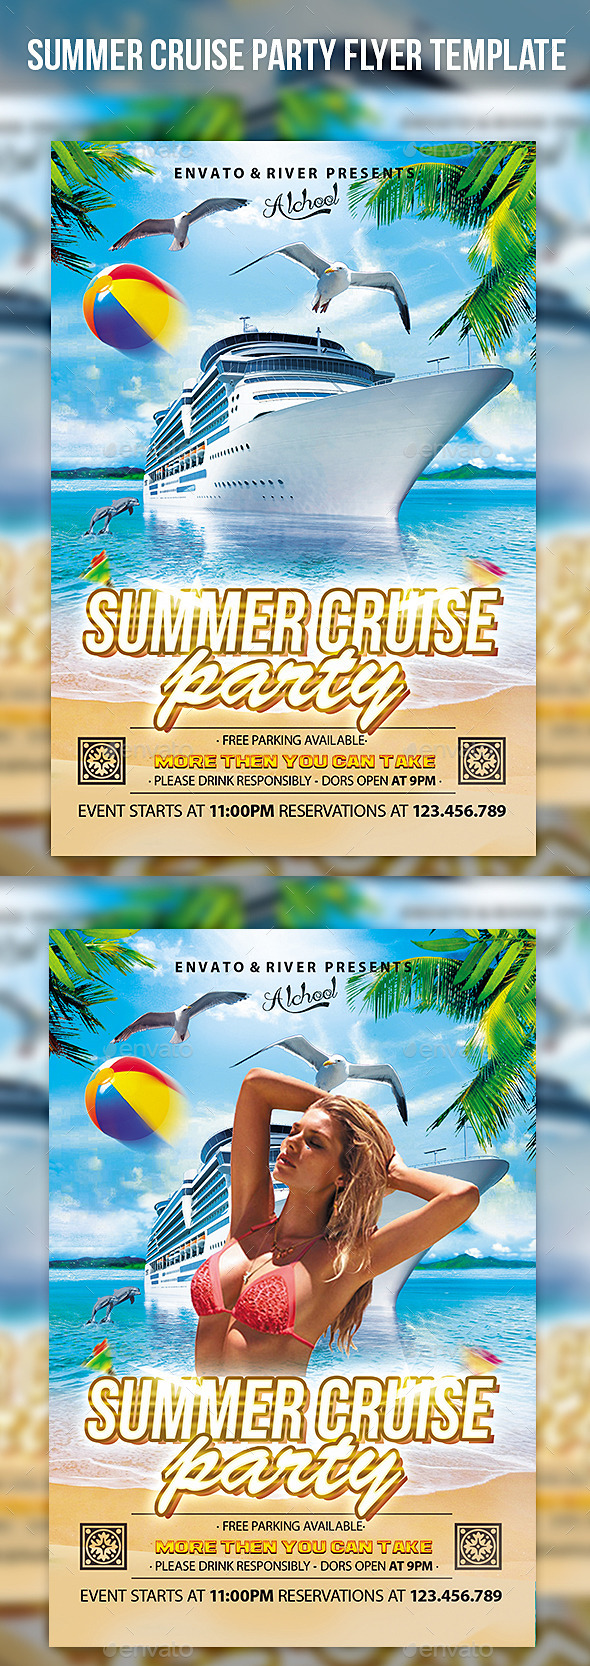 Summer Cruise Party Flyer Template - Events Flyers